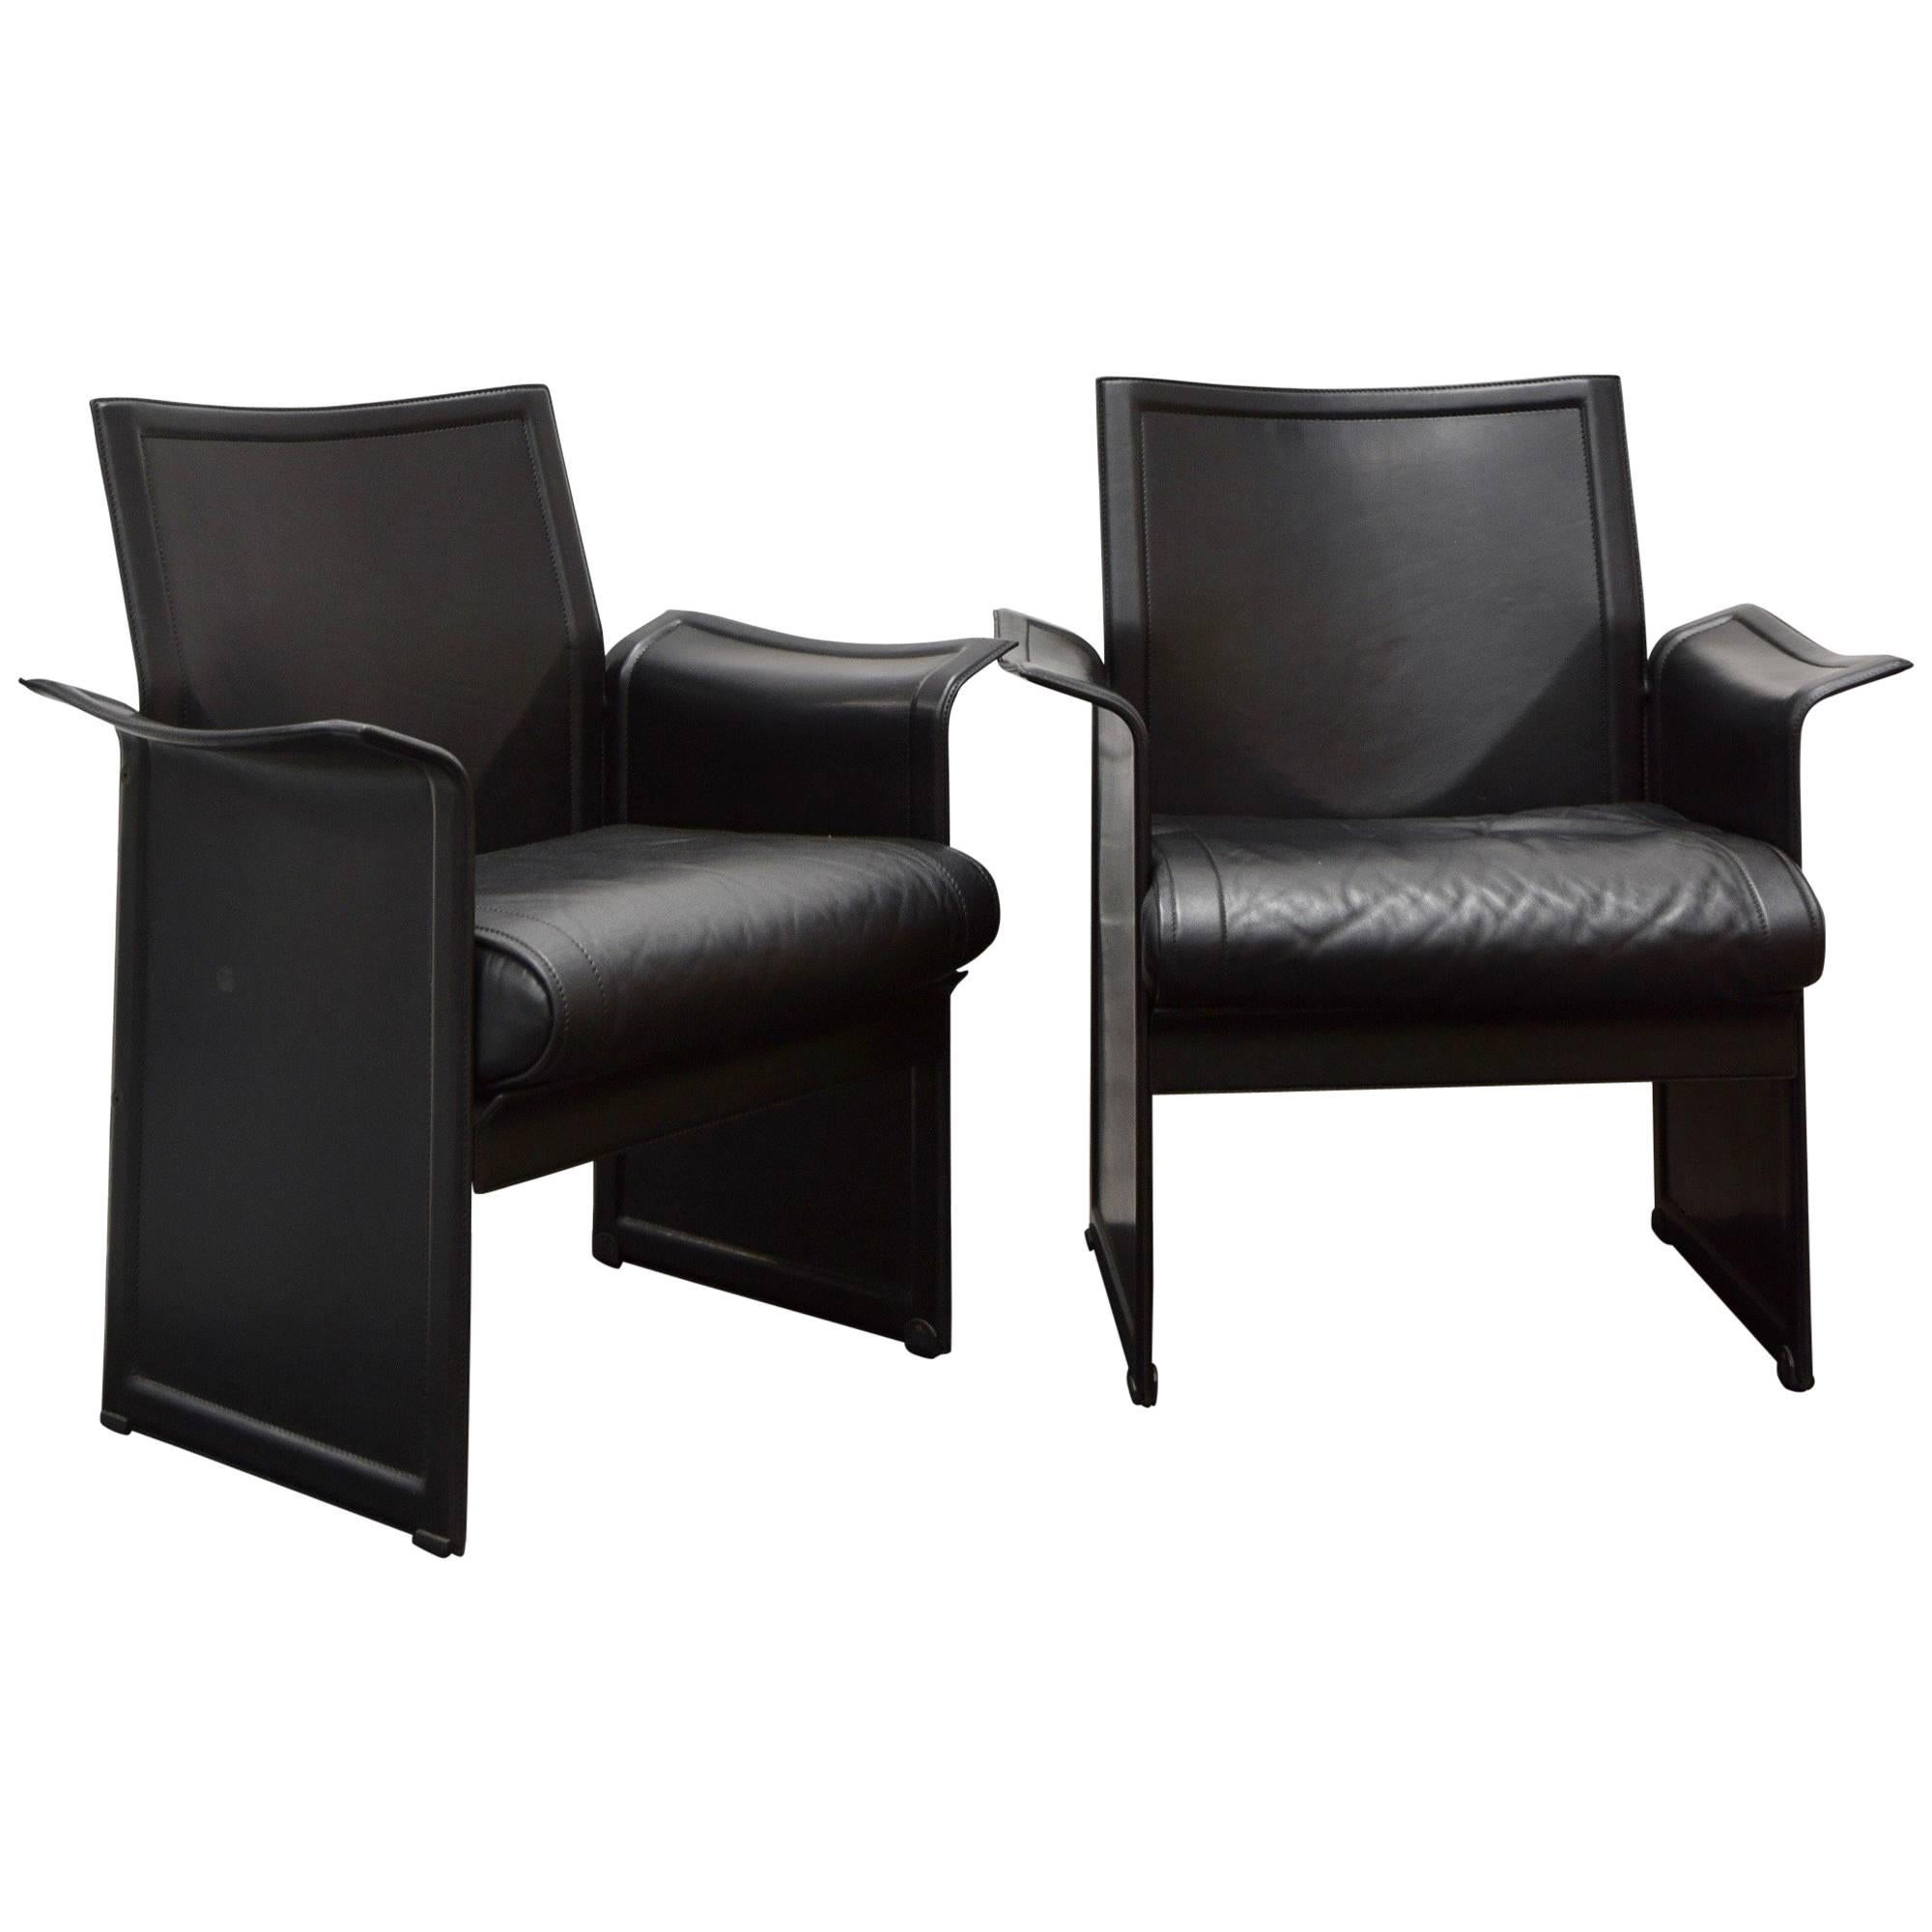 Good Pair Of Vintage Korium Leather Chairs By Tito Agnoli For Matteo Grassi, In  Black